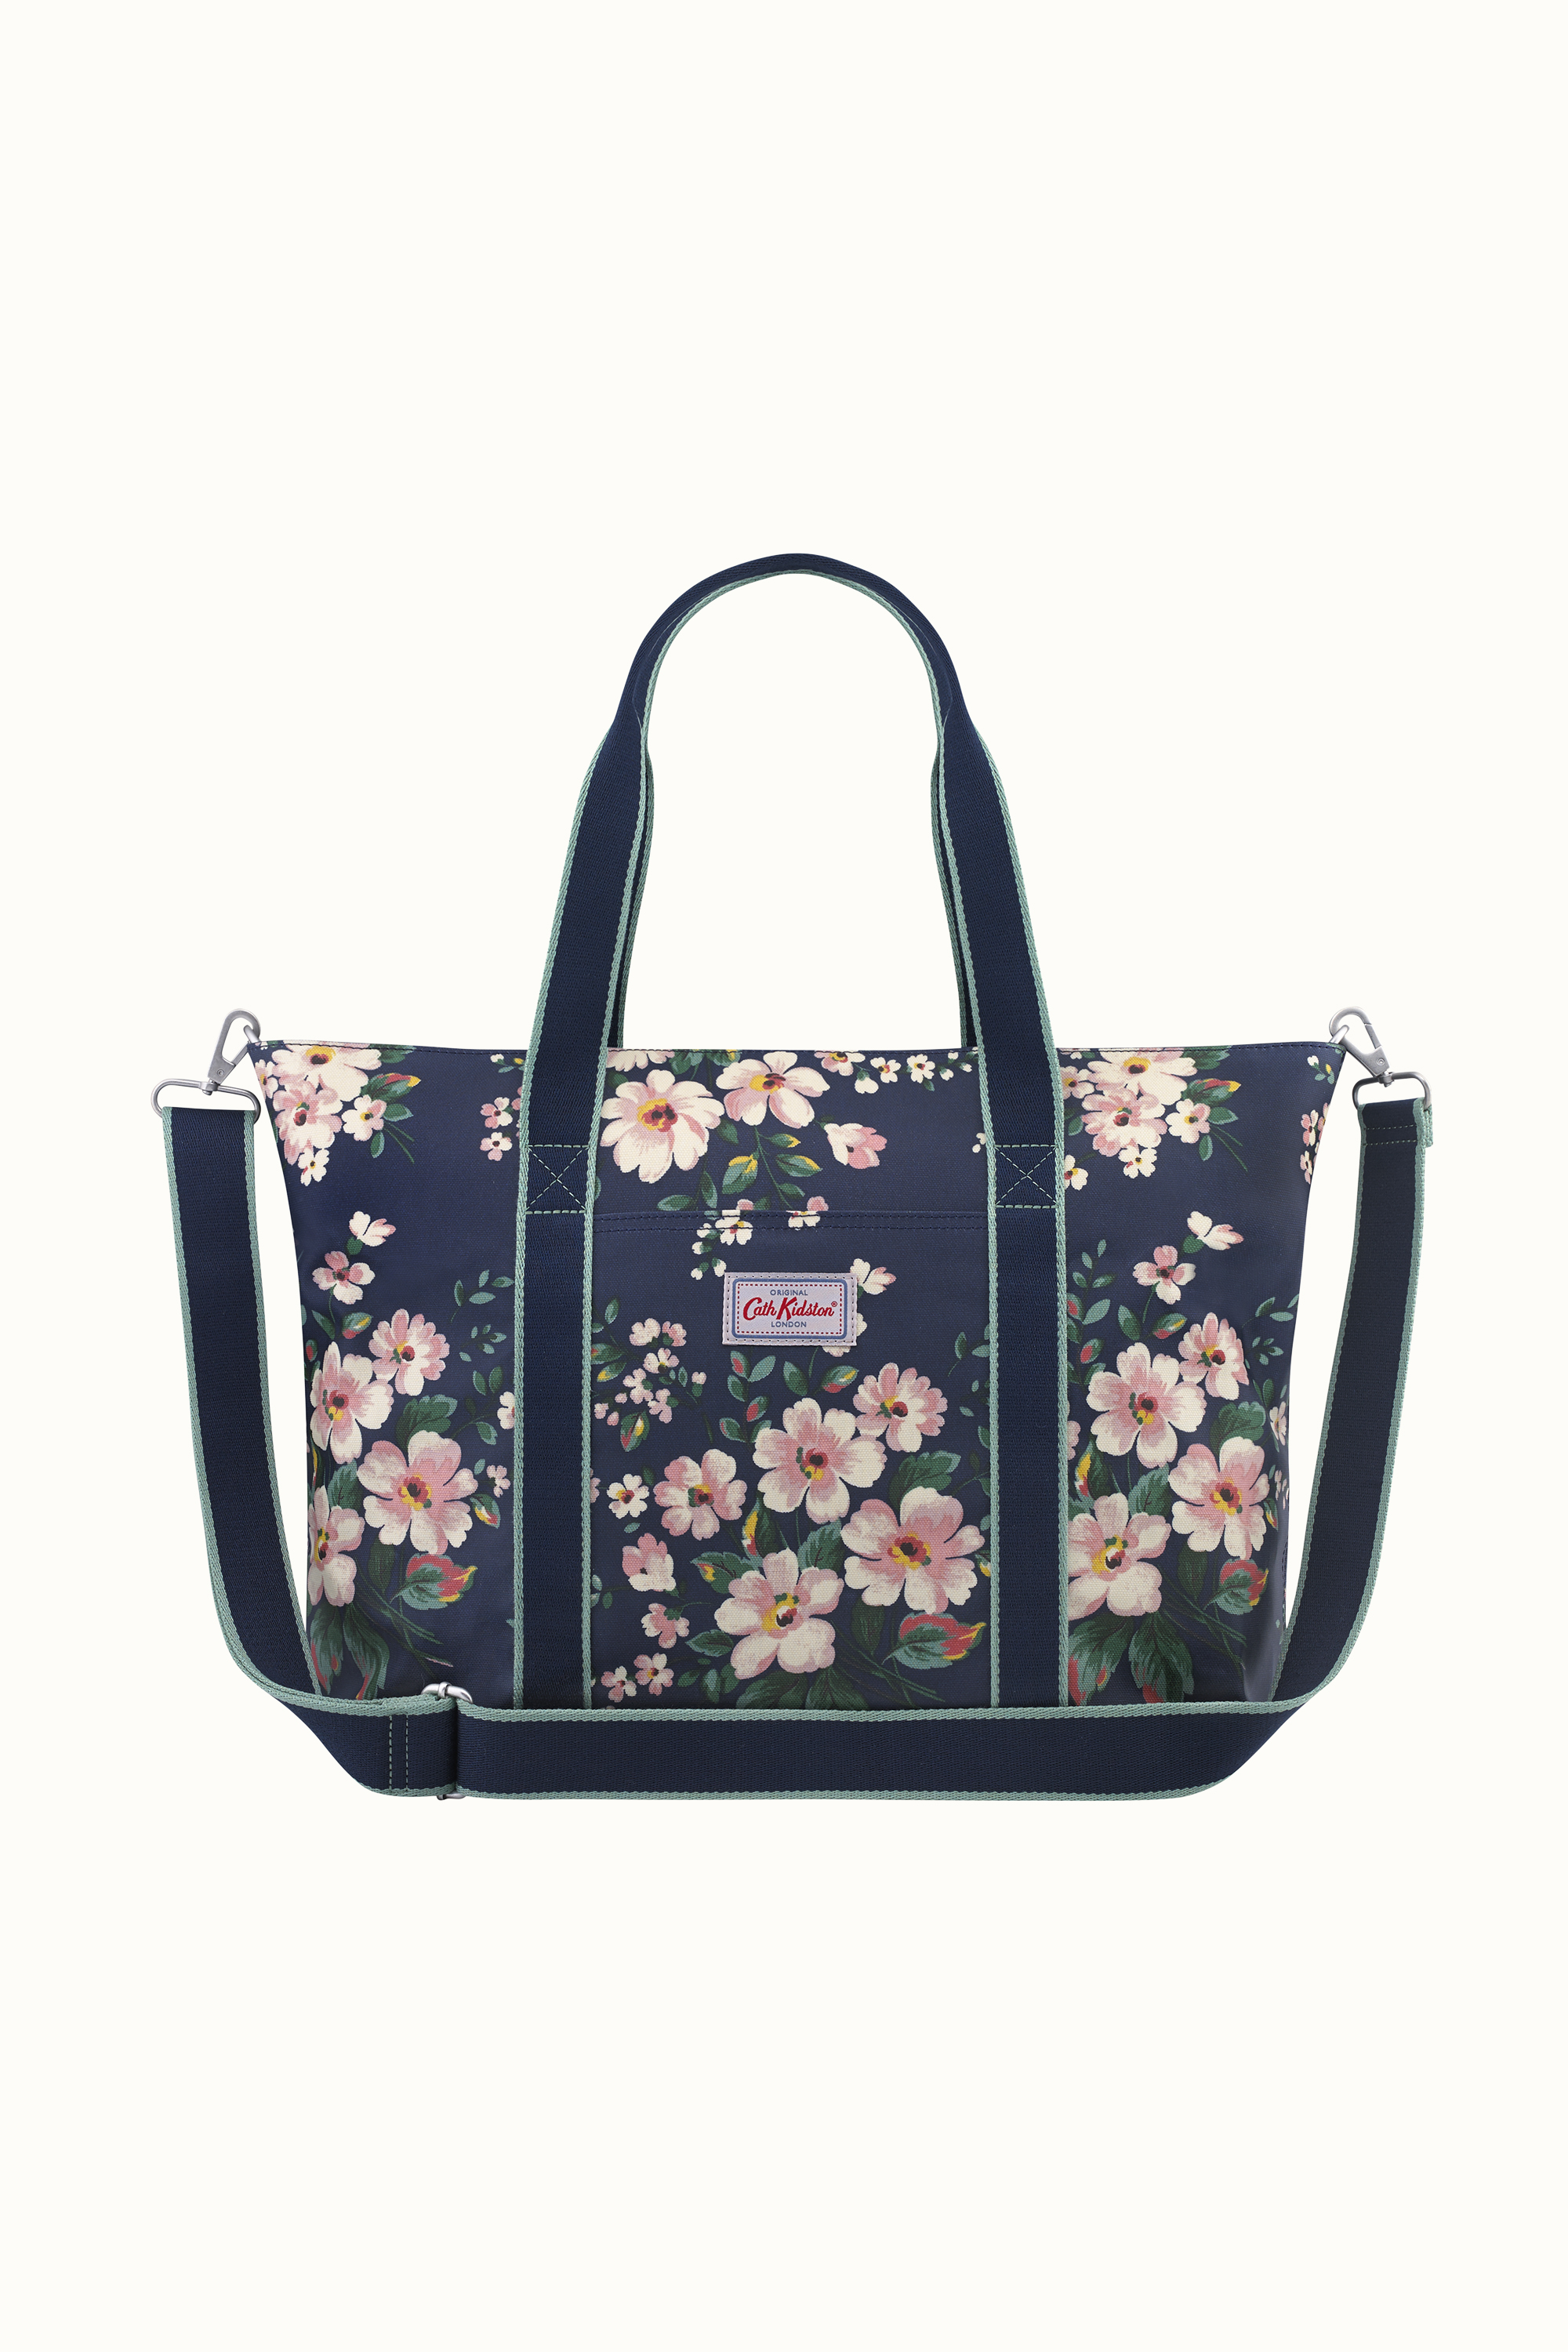 Cath Kidston Spitalfields Core Tote Nappy Changing Bag in Navy